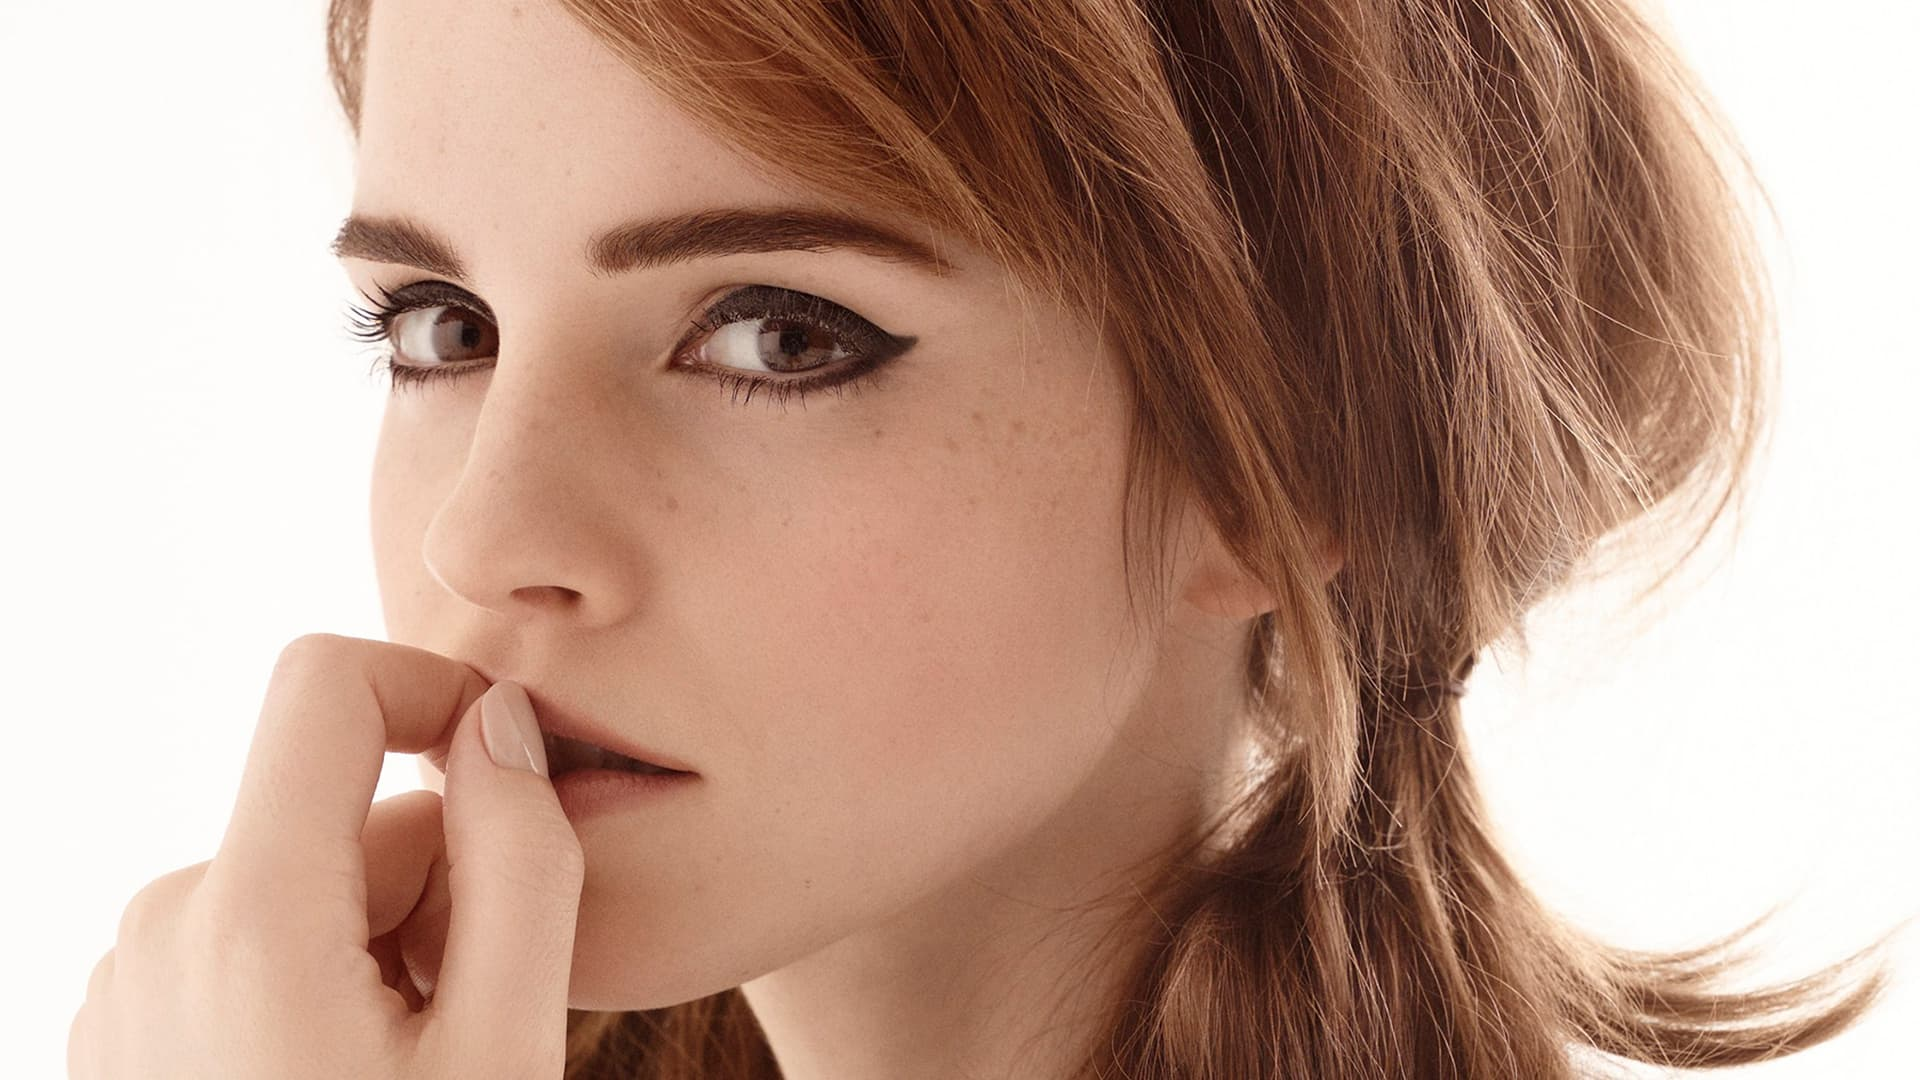 40  Emma Watson Wallpapers High Quality Resolution Download